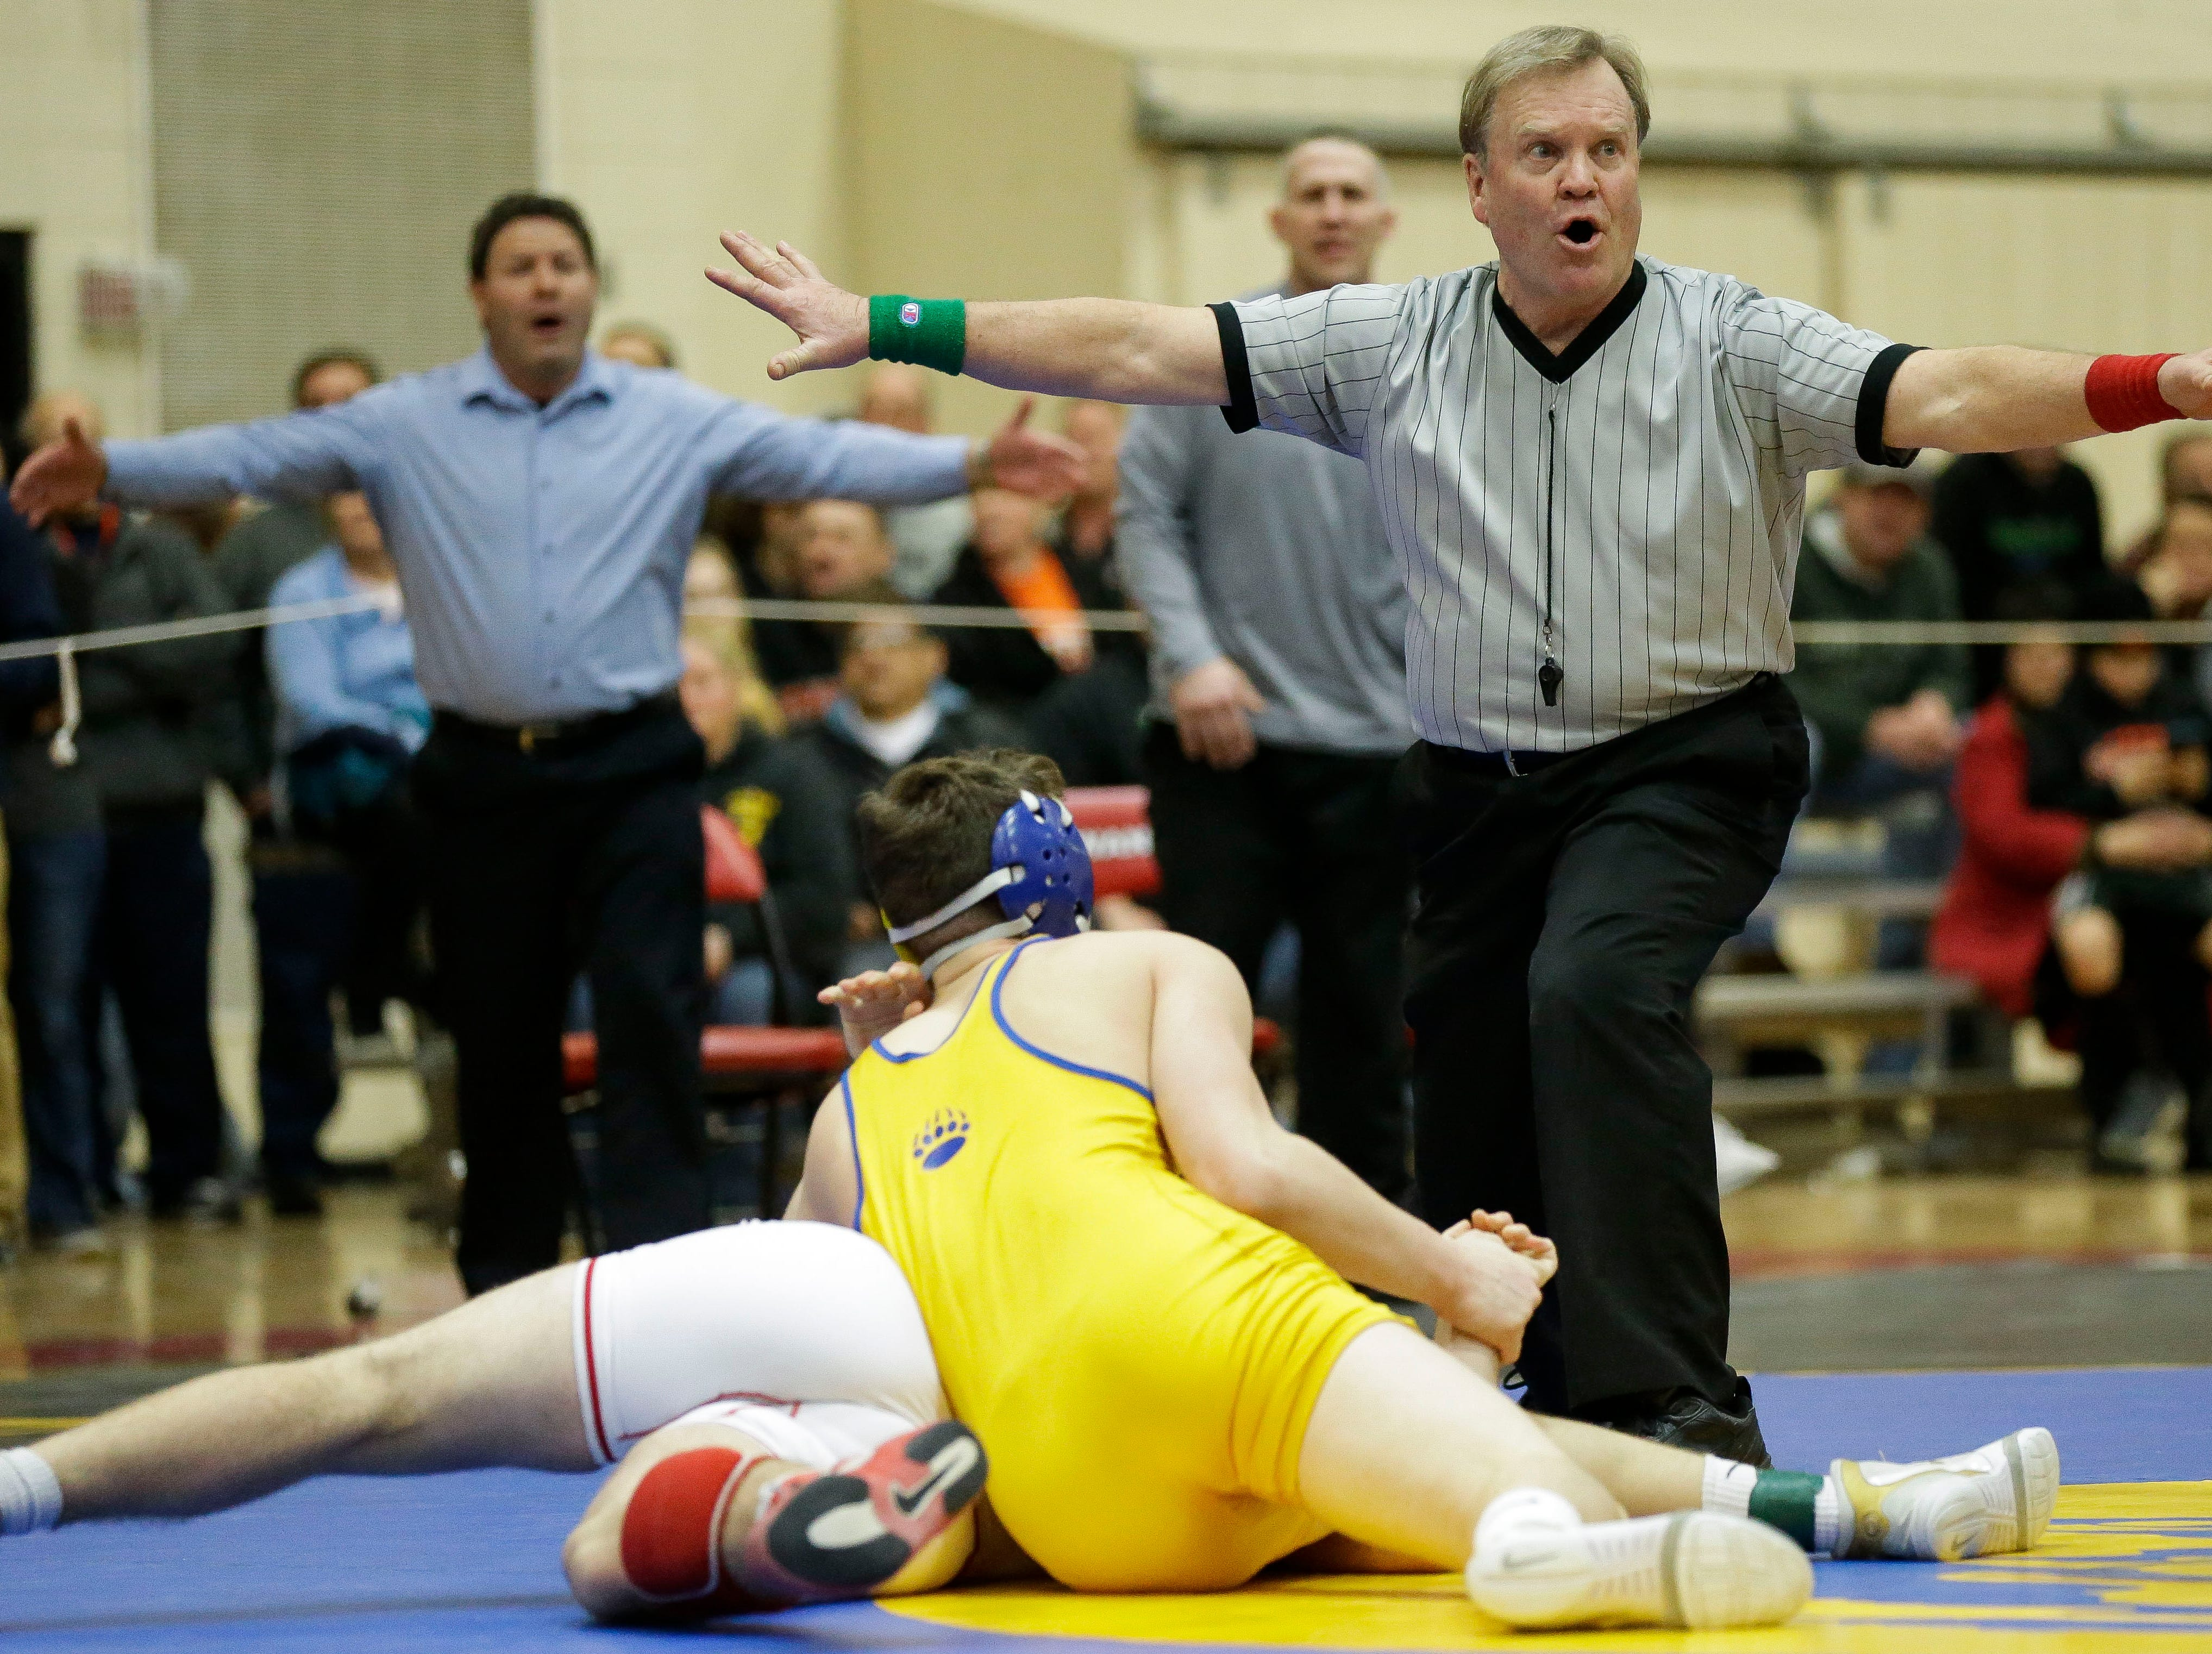 A referee gives a neutral signal in a 182-pound championship match on Saturday, February 16, 2019, during a Division 3 sectional meet at Shawano High School in Shawano, Wis.